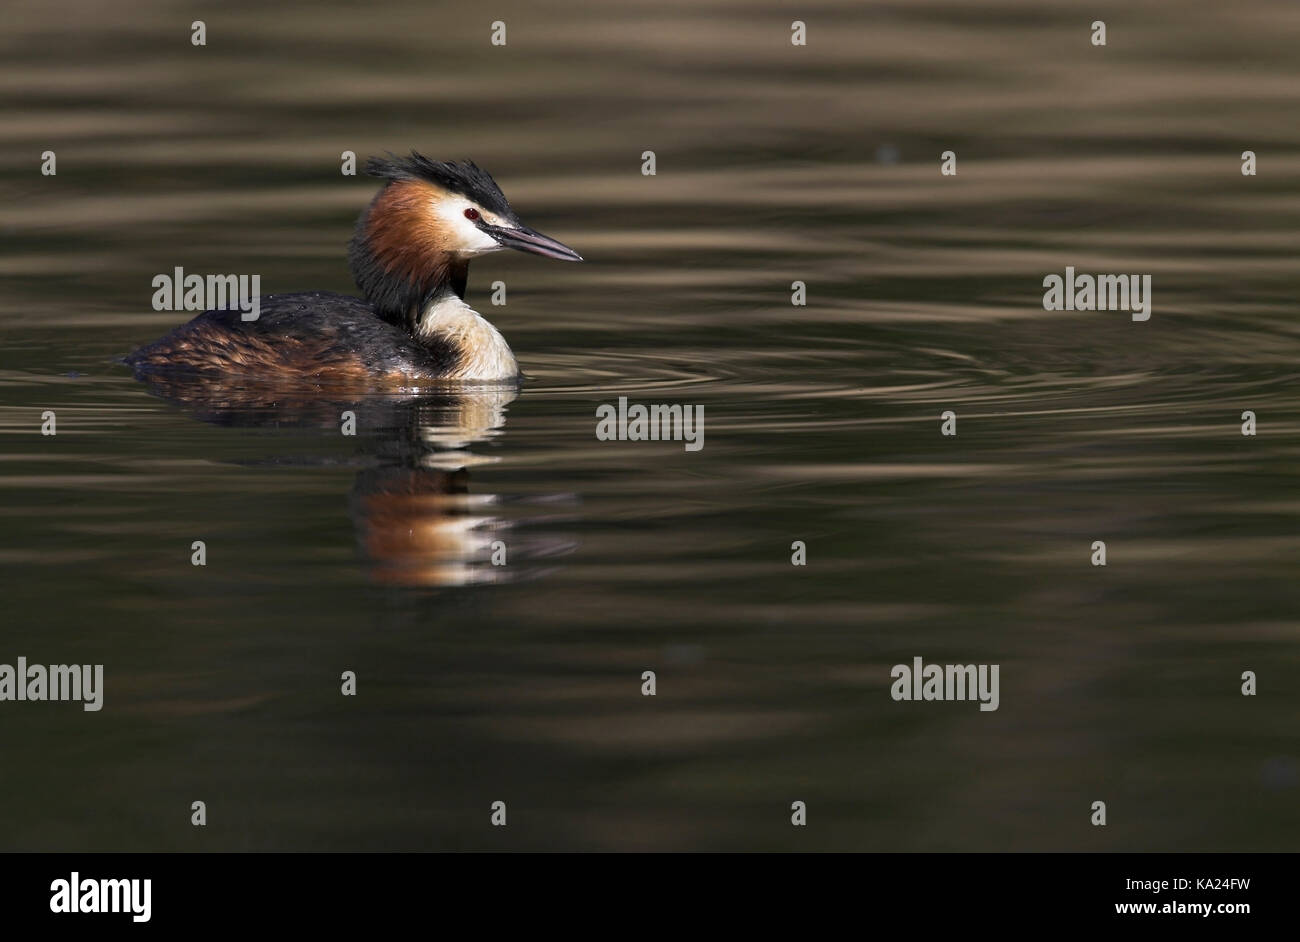 Bonnet diver, Great Crested Grebe, Podiceps cristatus, Haubentaucher / Great Crested Grebe / Podiceps cristatus - Stock Image